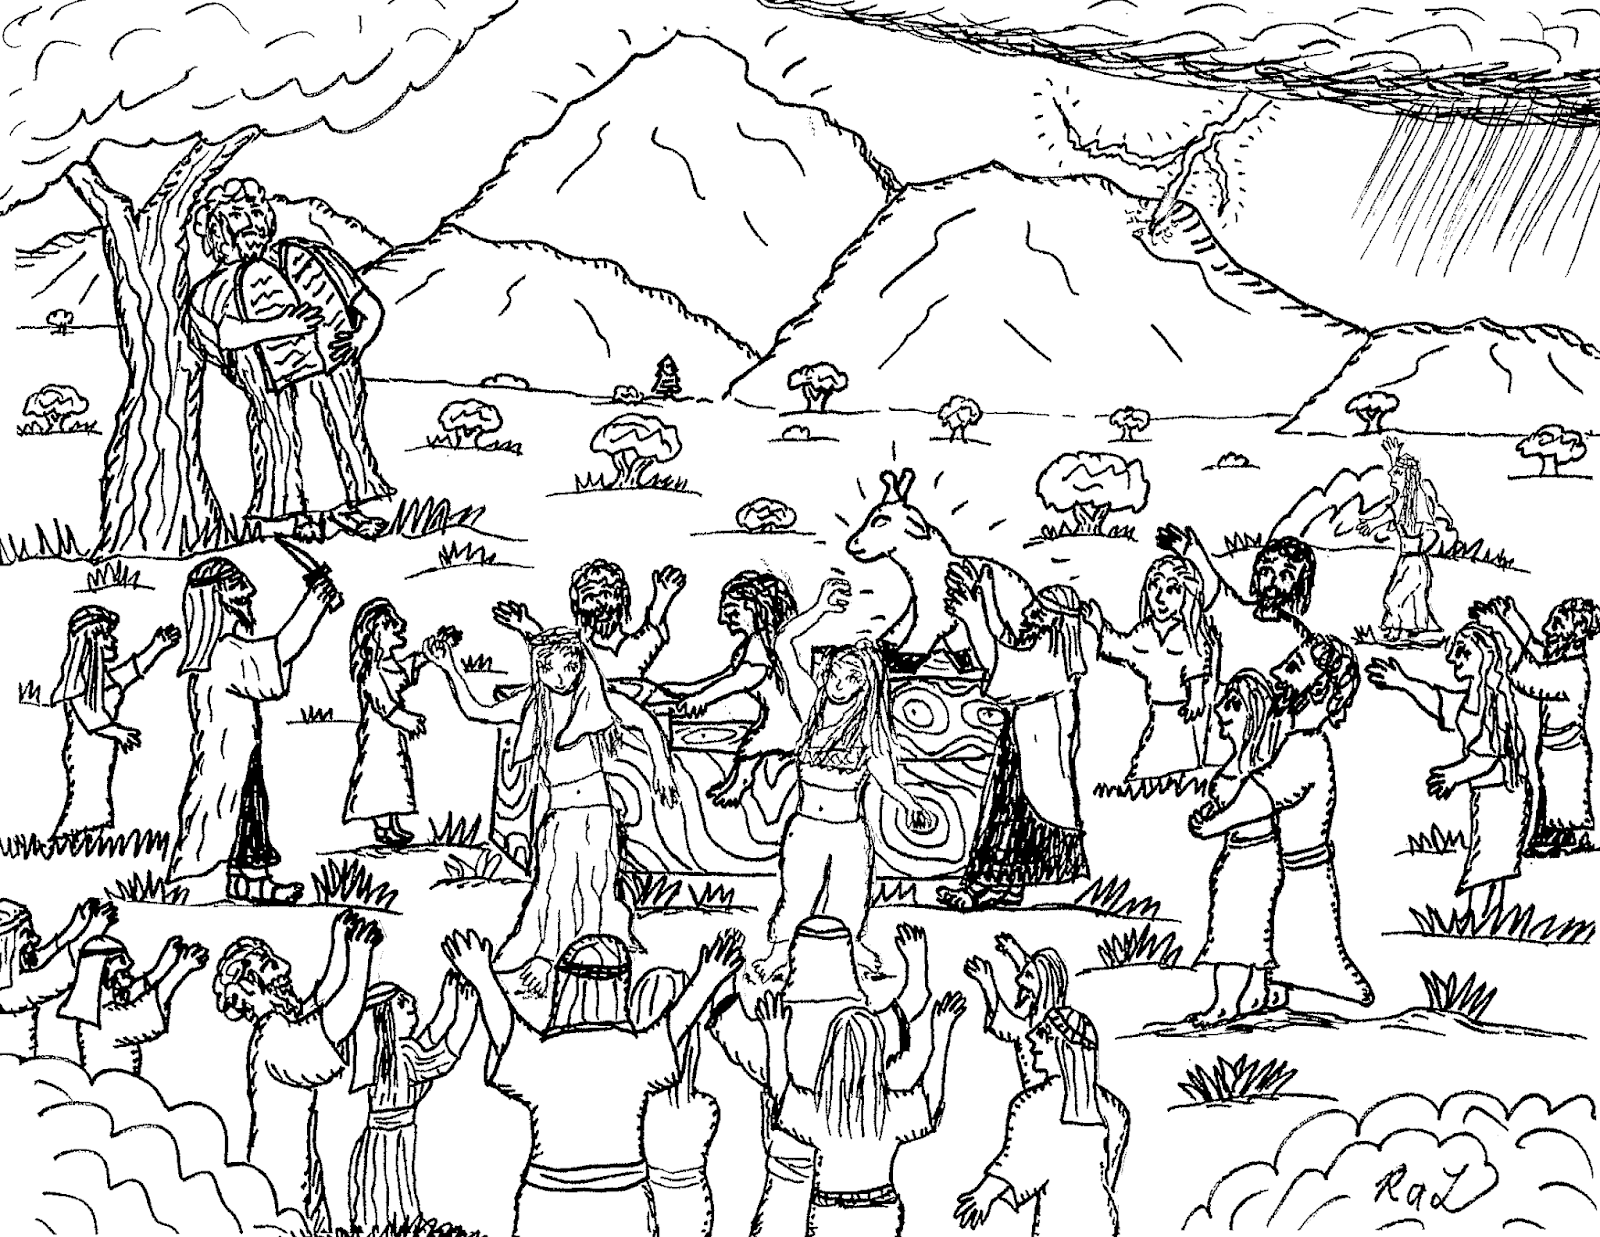 Robin's Great Coloring Pages: Moses sees the Children of Israel worshipping  the Golden Calf